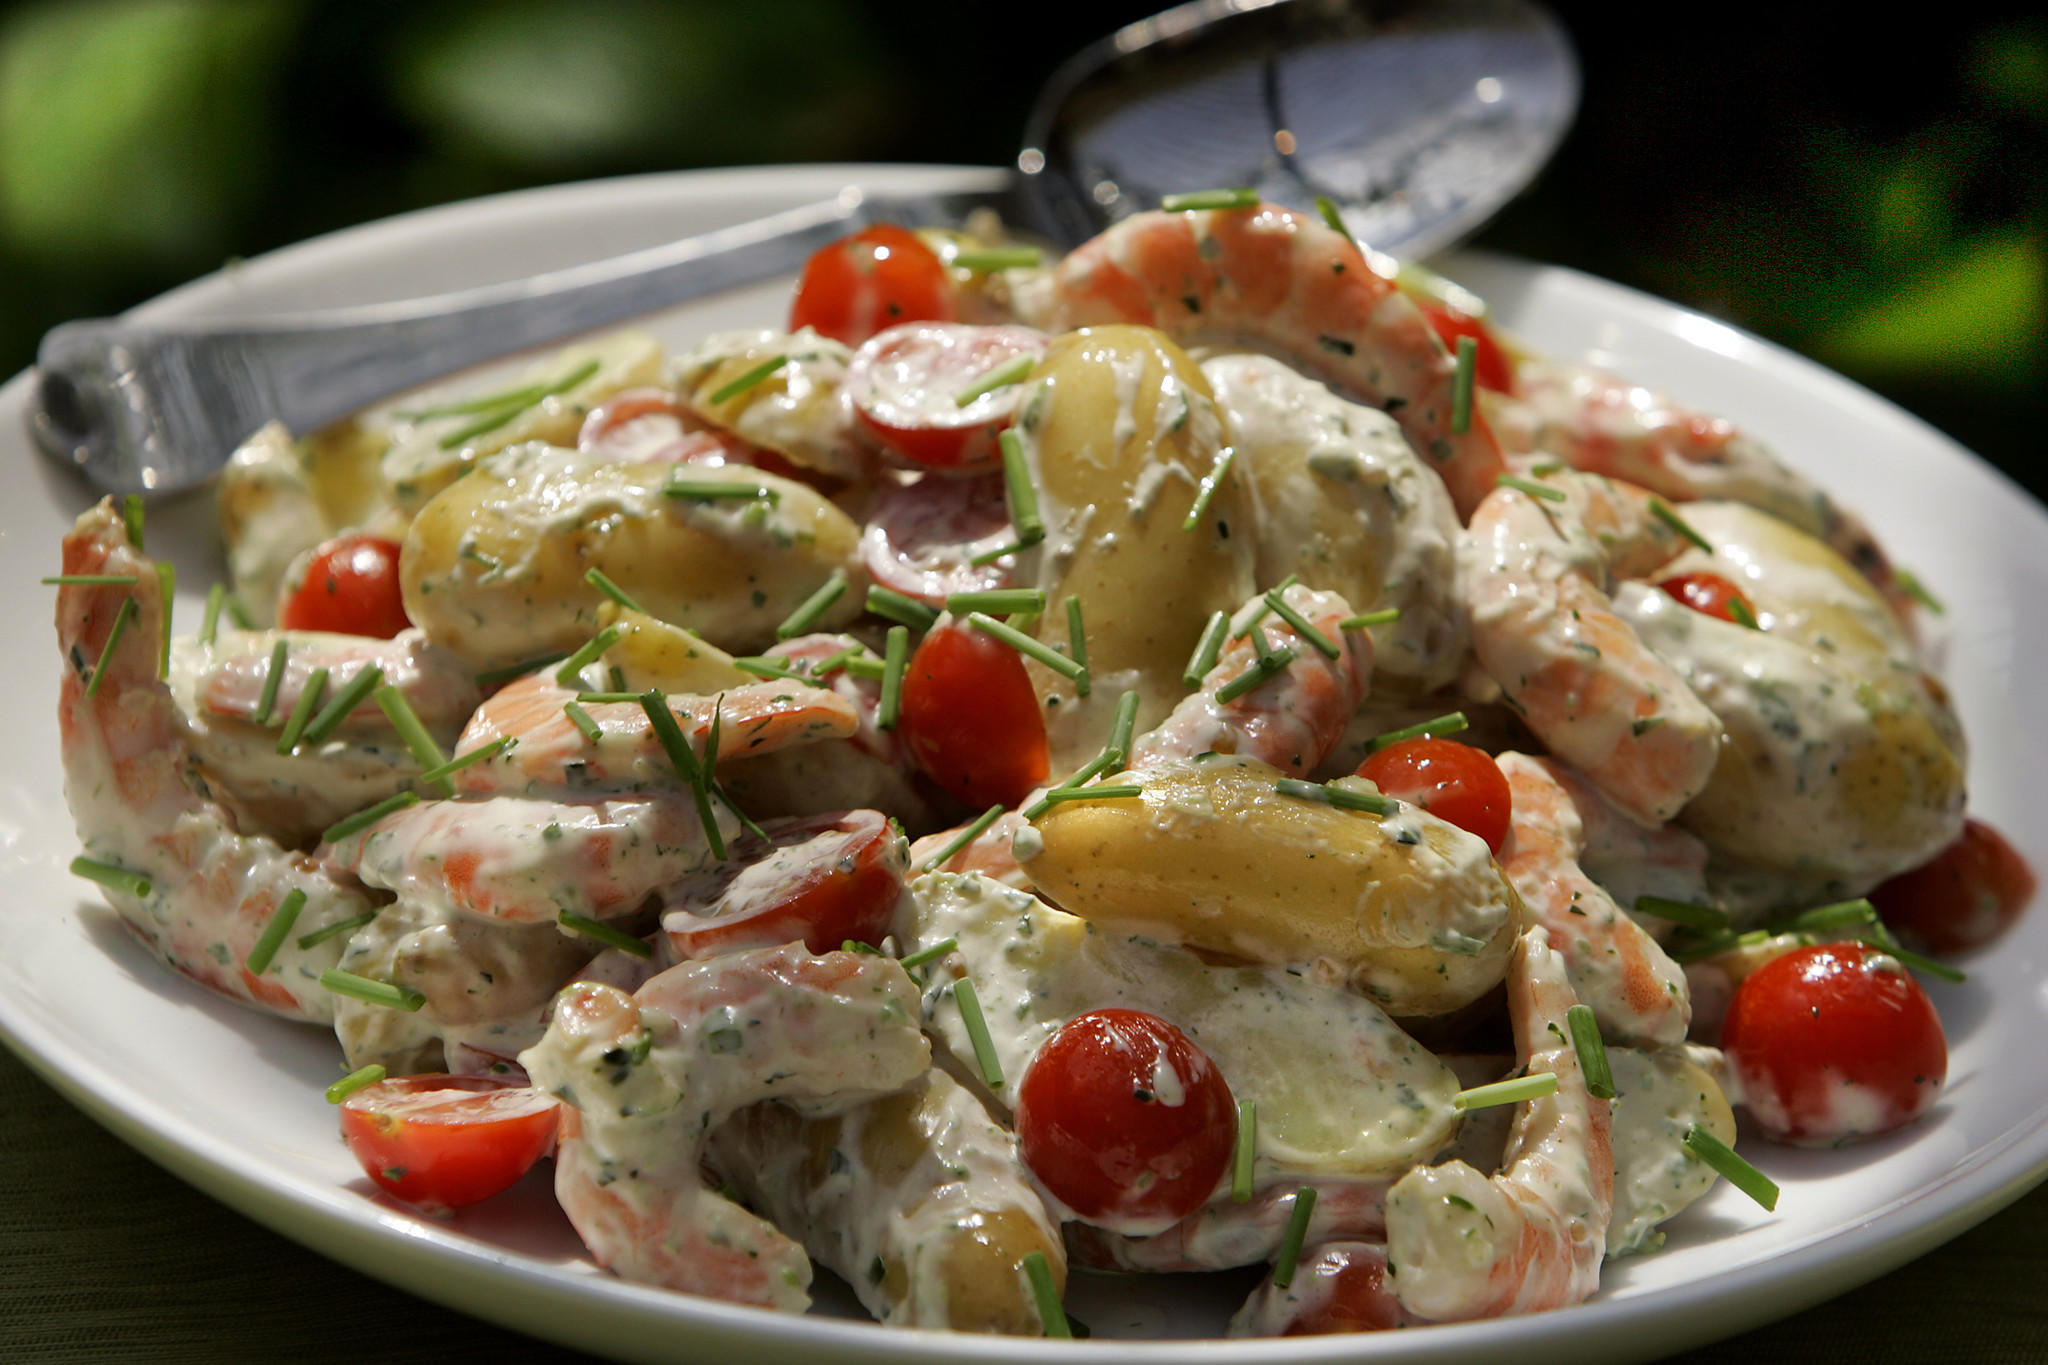 Potato and shrimp salad with green goddess dressing